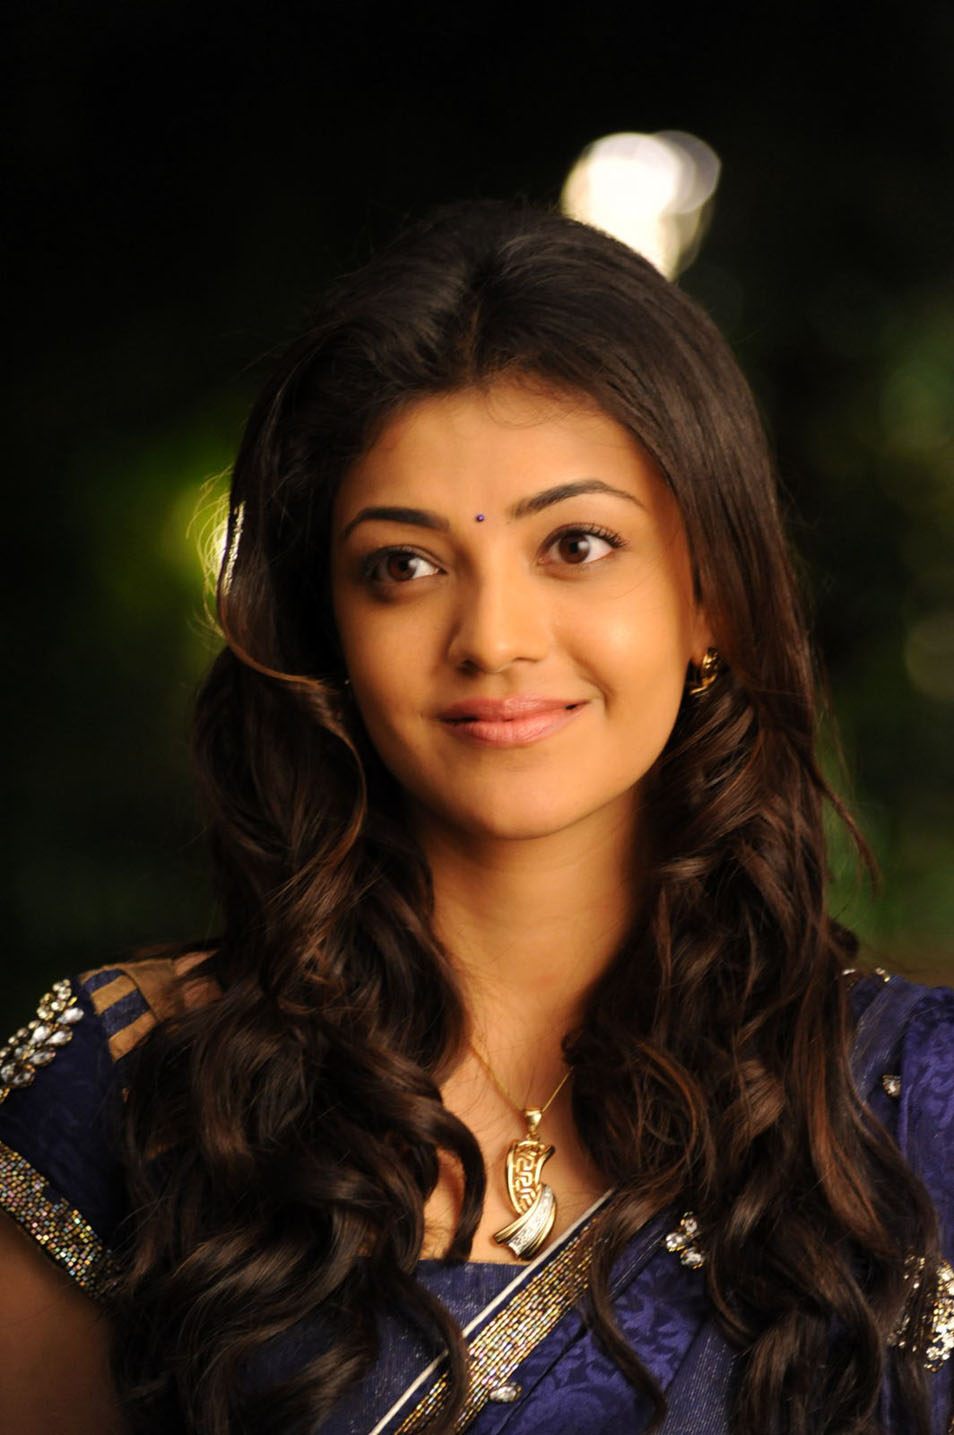 Images Of Cute Babies Wallpaper Free Download Sun Shines Kajal Agarwal Veera Movie Stills